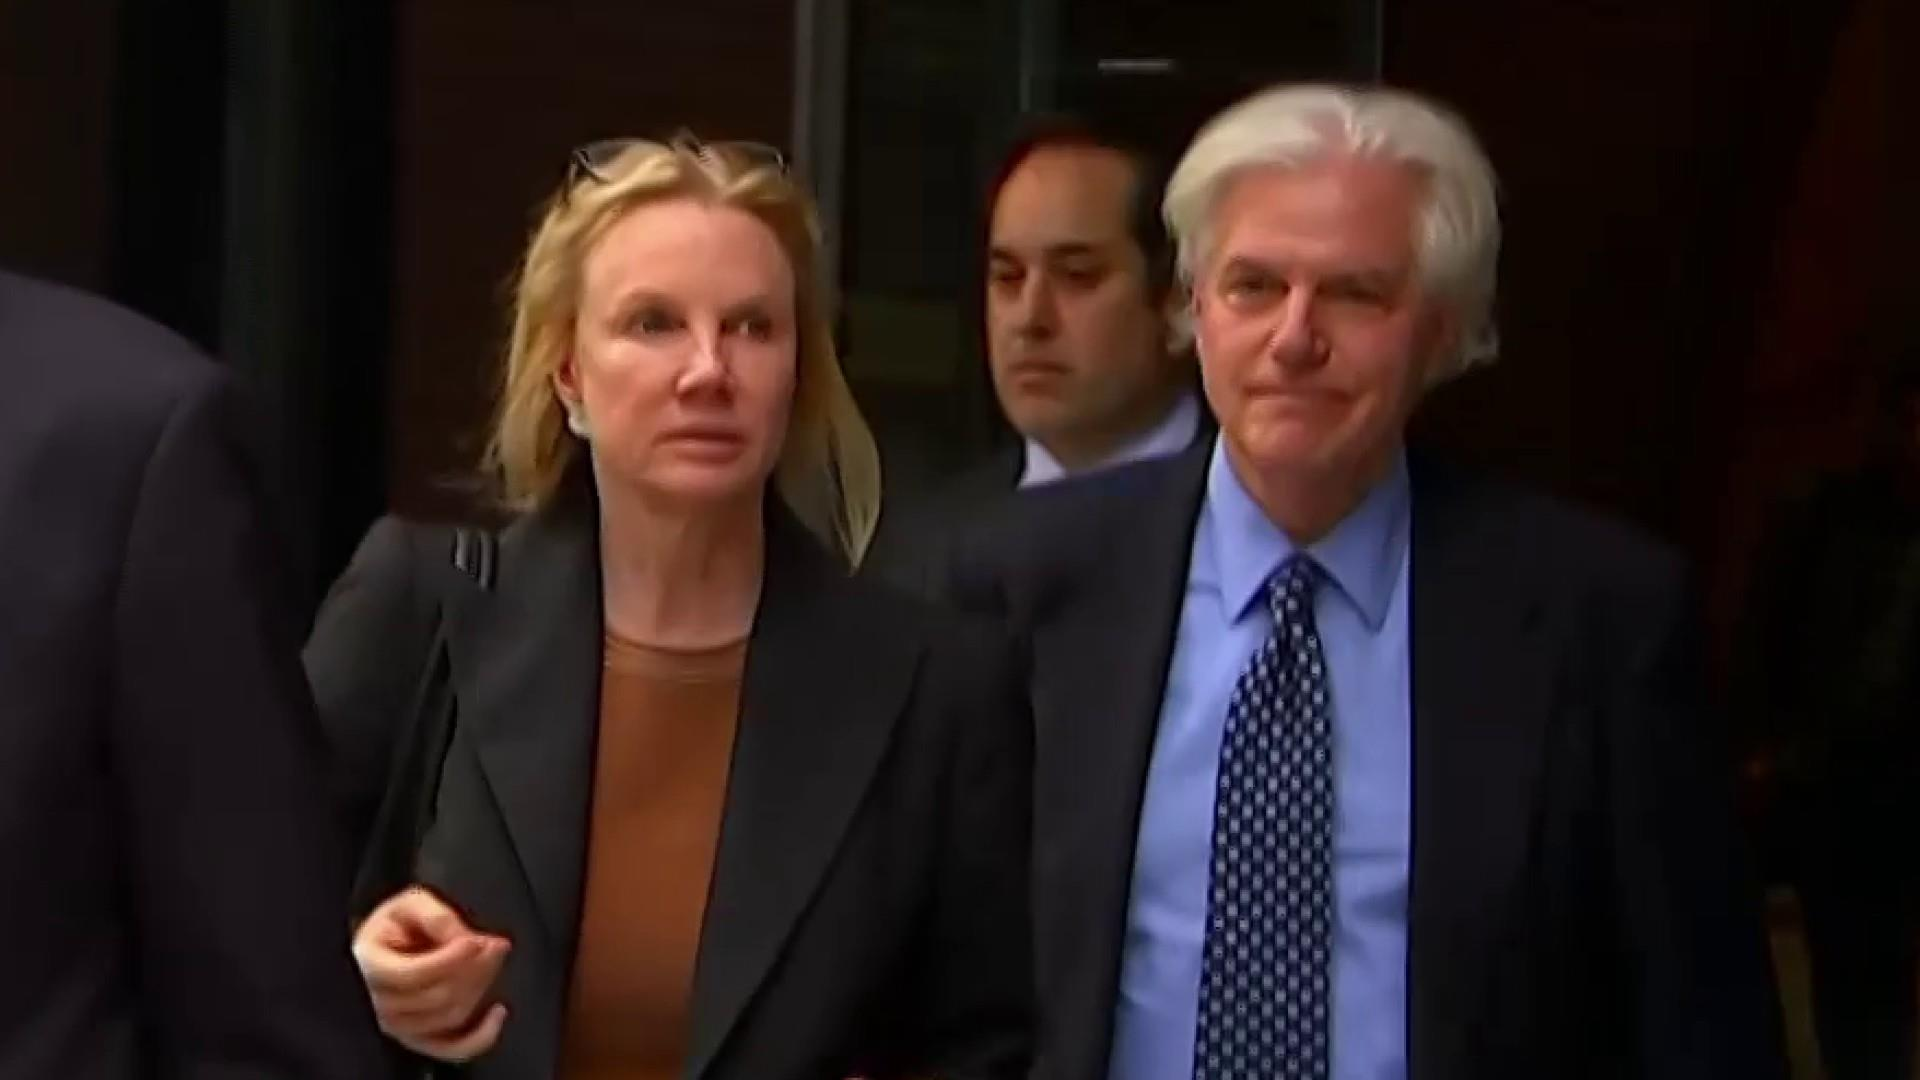 NYC man, wife both sentenced to month in prison in college admissions scam